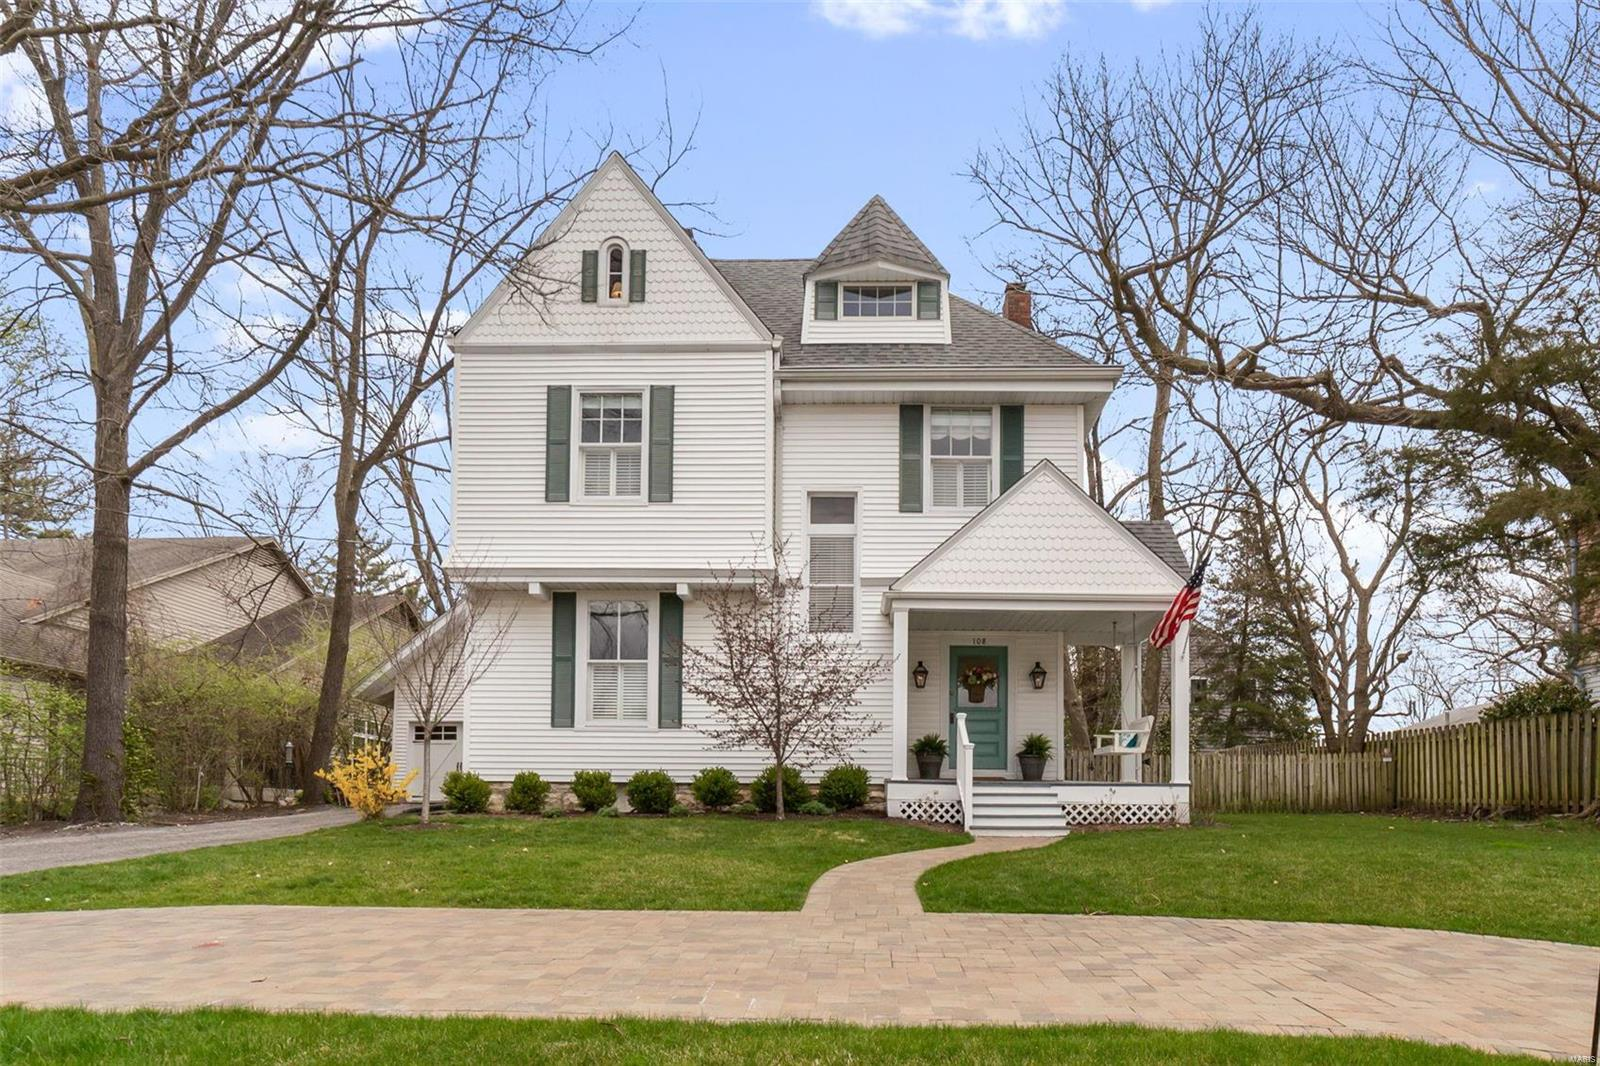 108 N Taylor Property Photo - Kirkwood, MO real estate listing